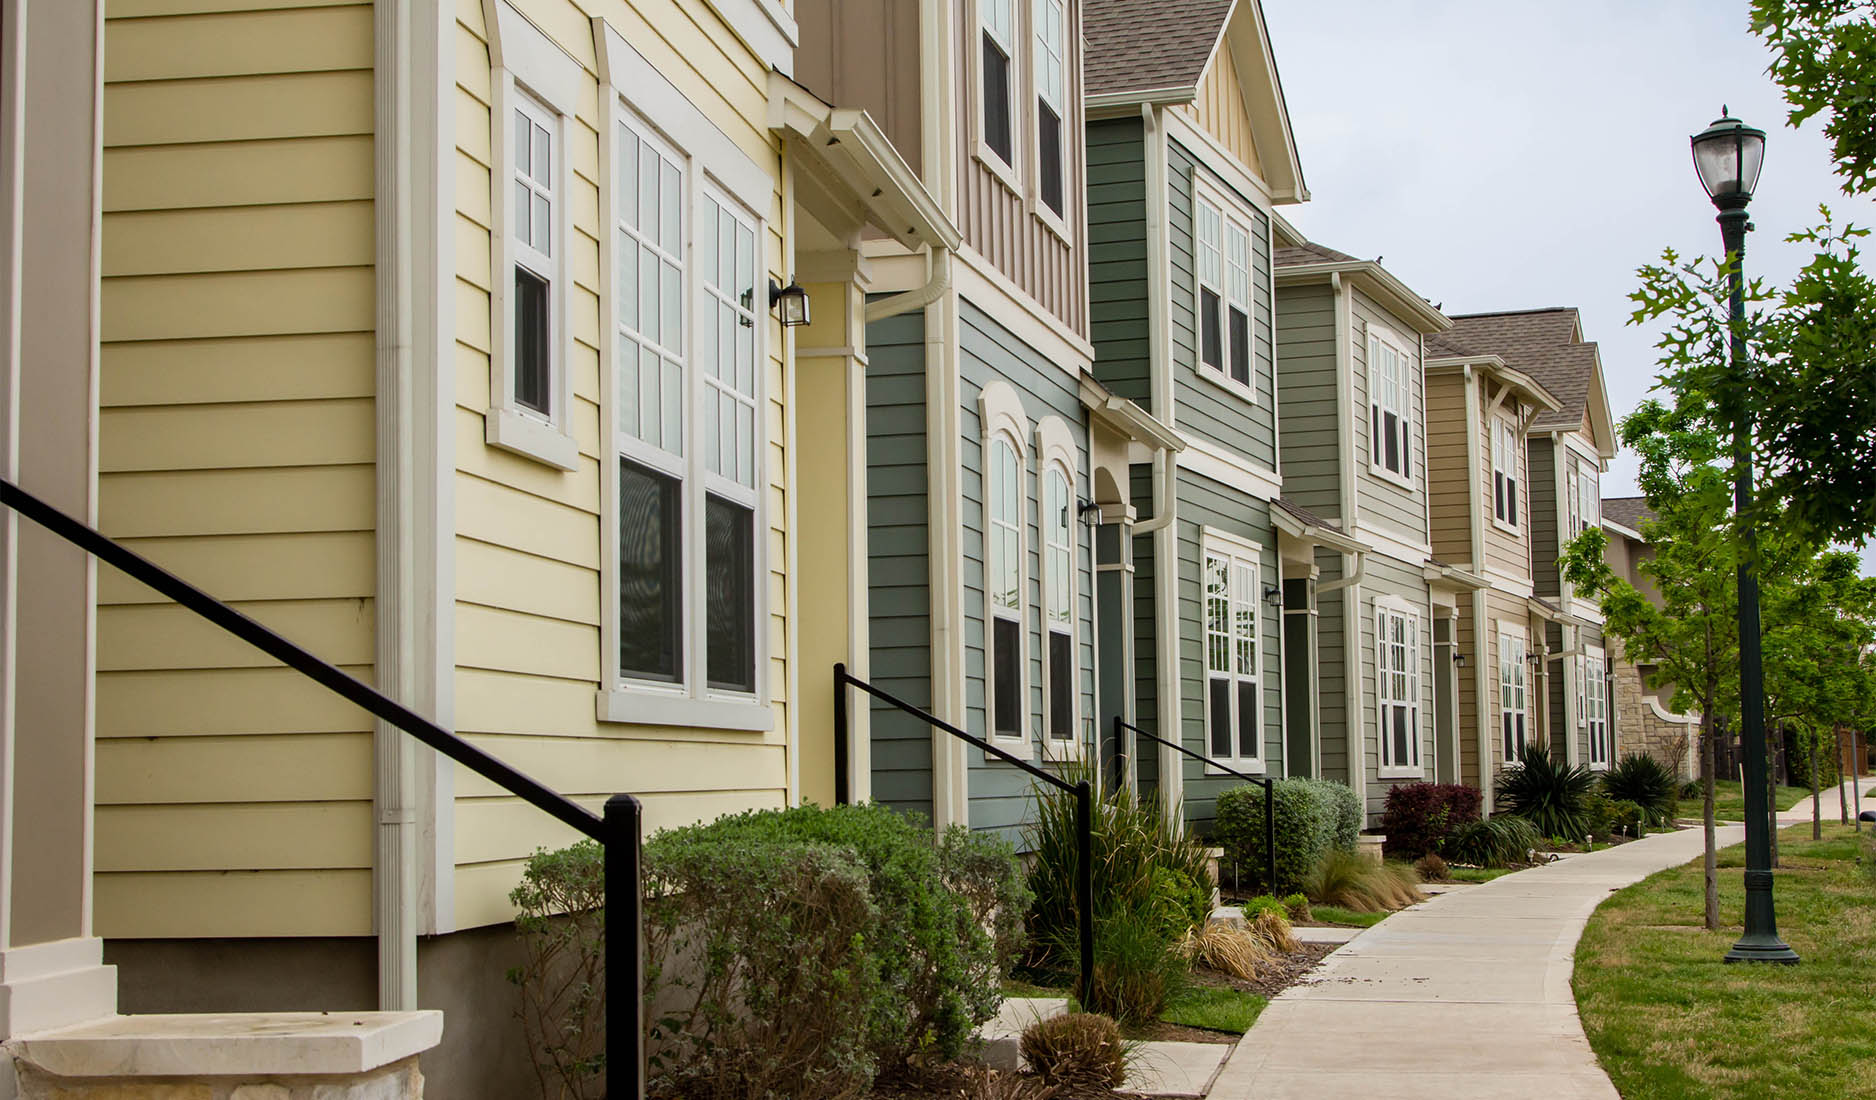 Town Houses in the subdivision of Mueller in Austin, Texas.